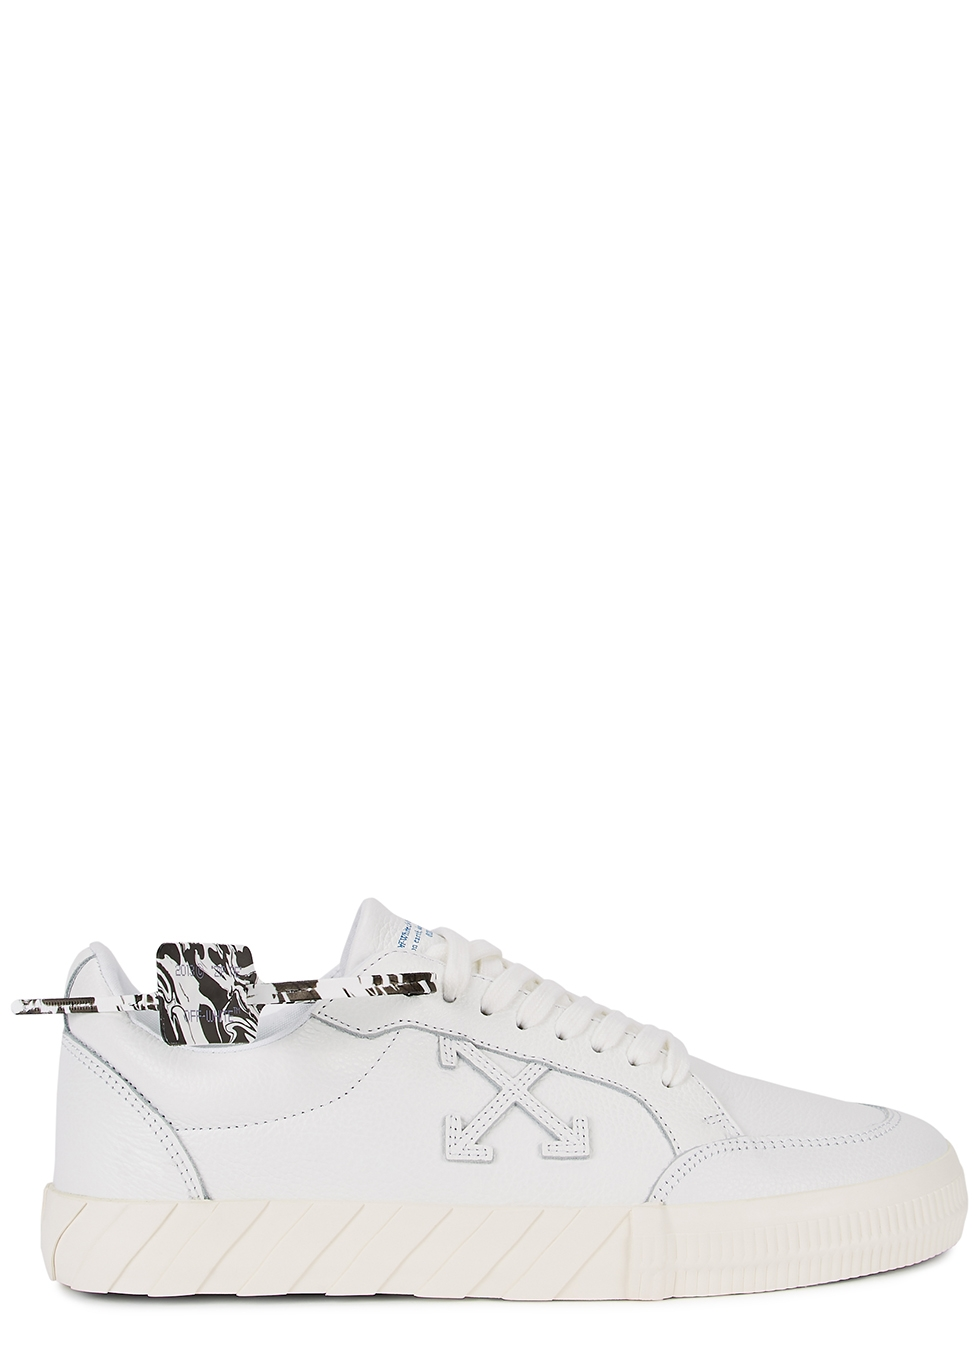 Low Vulcanized white leather sneakers